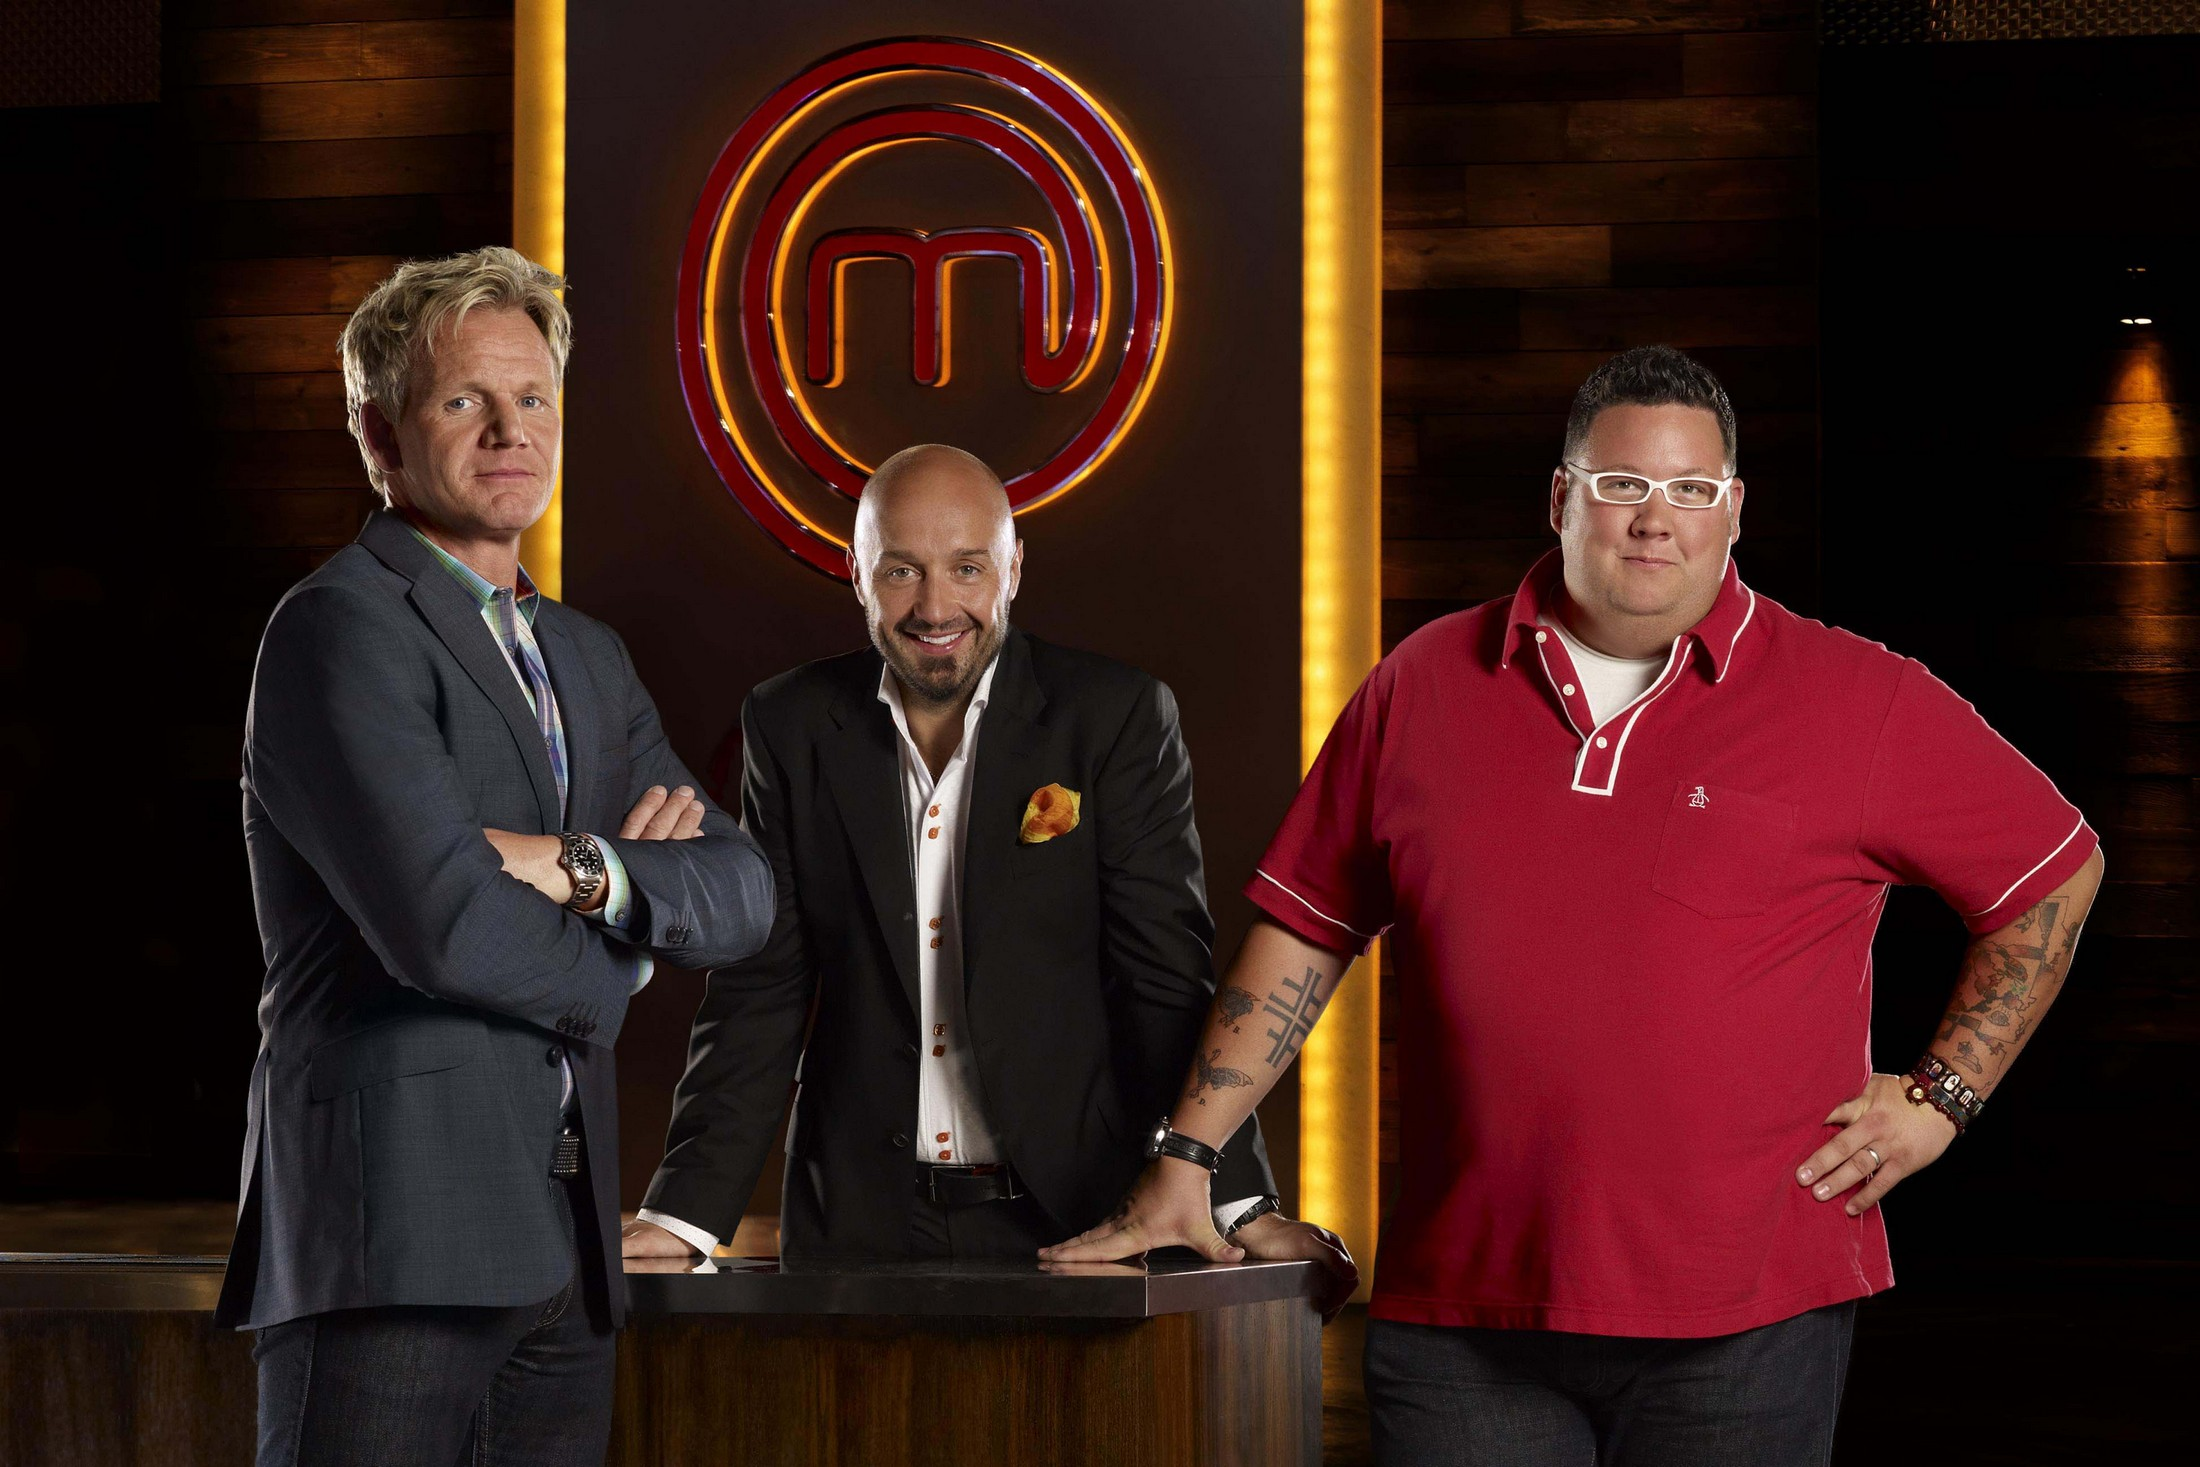 MASTERCHEF: Chef Gordon Ramsay (L), Restraunteur Joe Bastianich (C) and Chef Graham Elliot (R) star in the new FOX cooking competition show MASTERCHEF premiering Tuesday, July 27 (9:00-10:00 PM ET/PT) on FOX. ©2010 Fox Broadcasting Co. CR: Florian Schneider/FOX